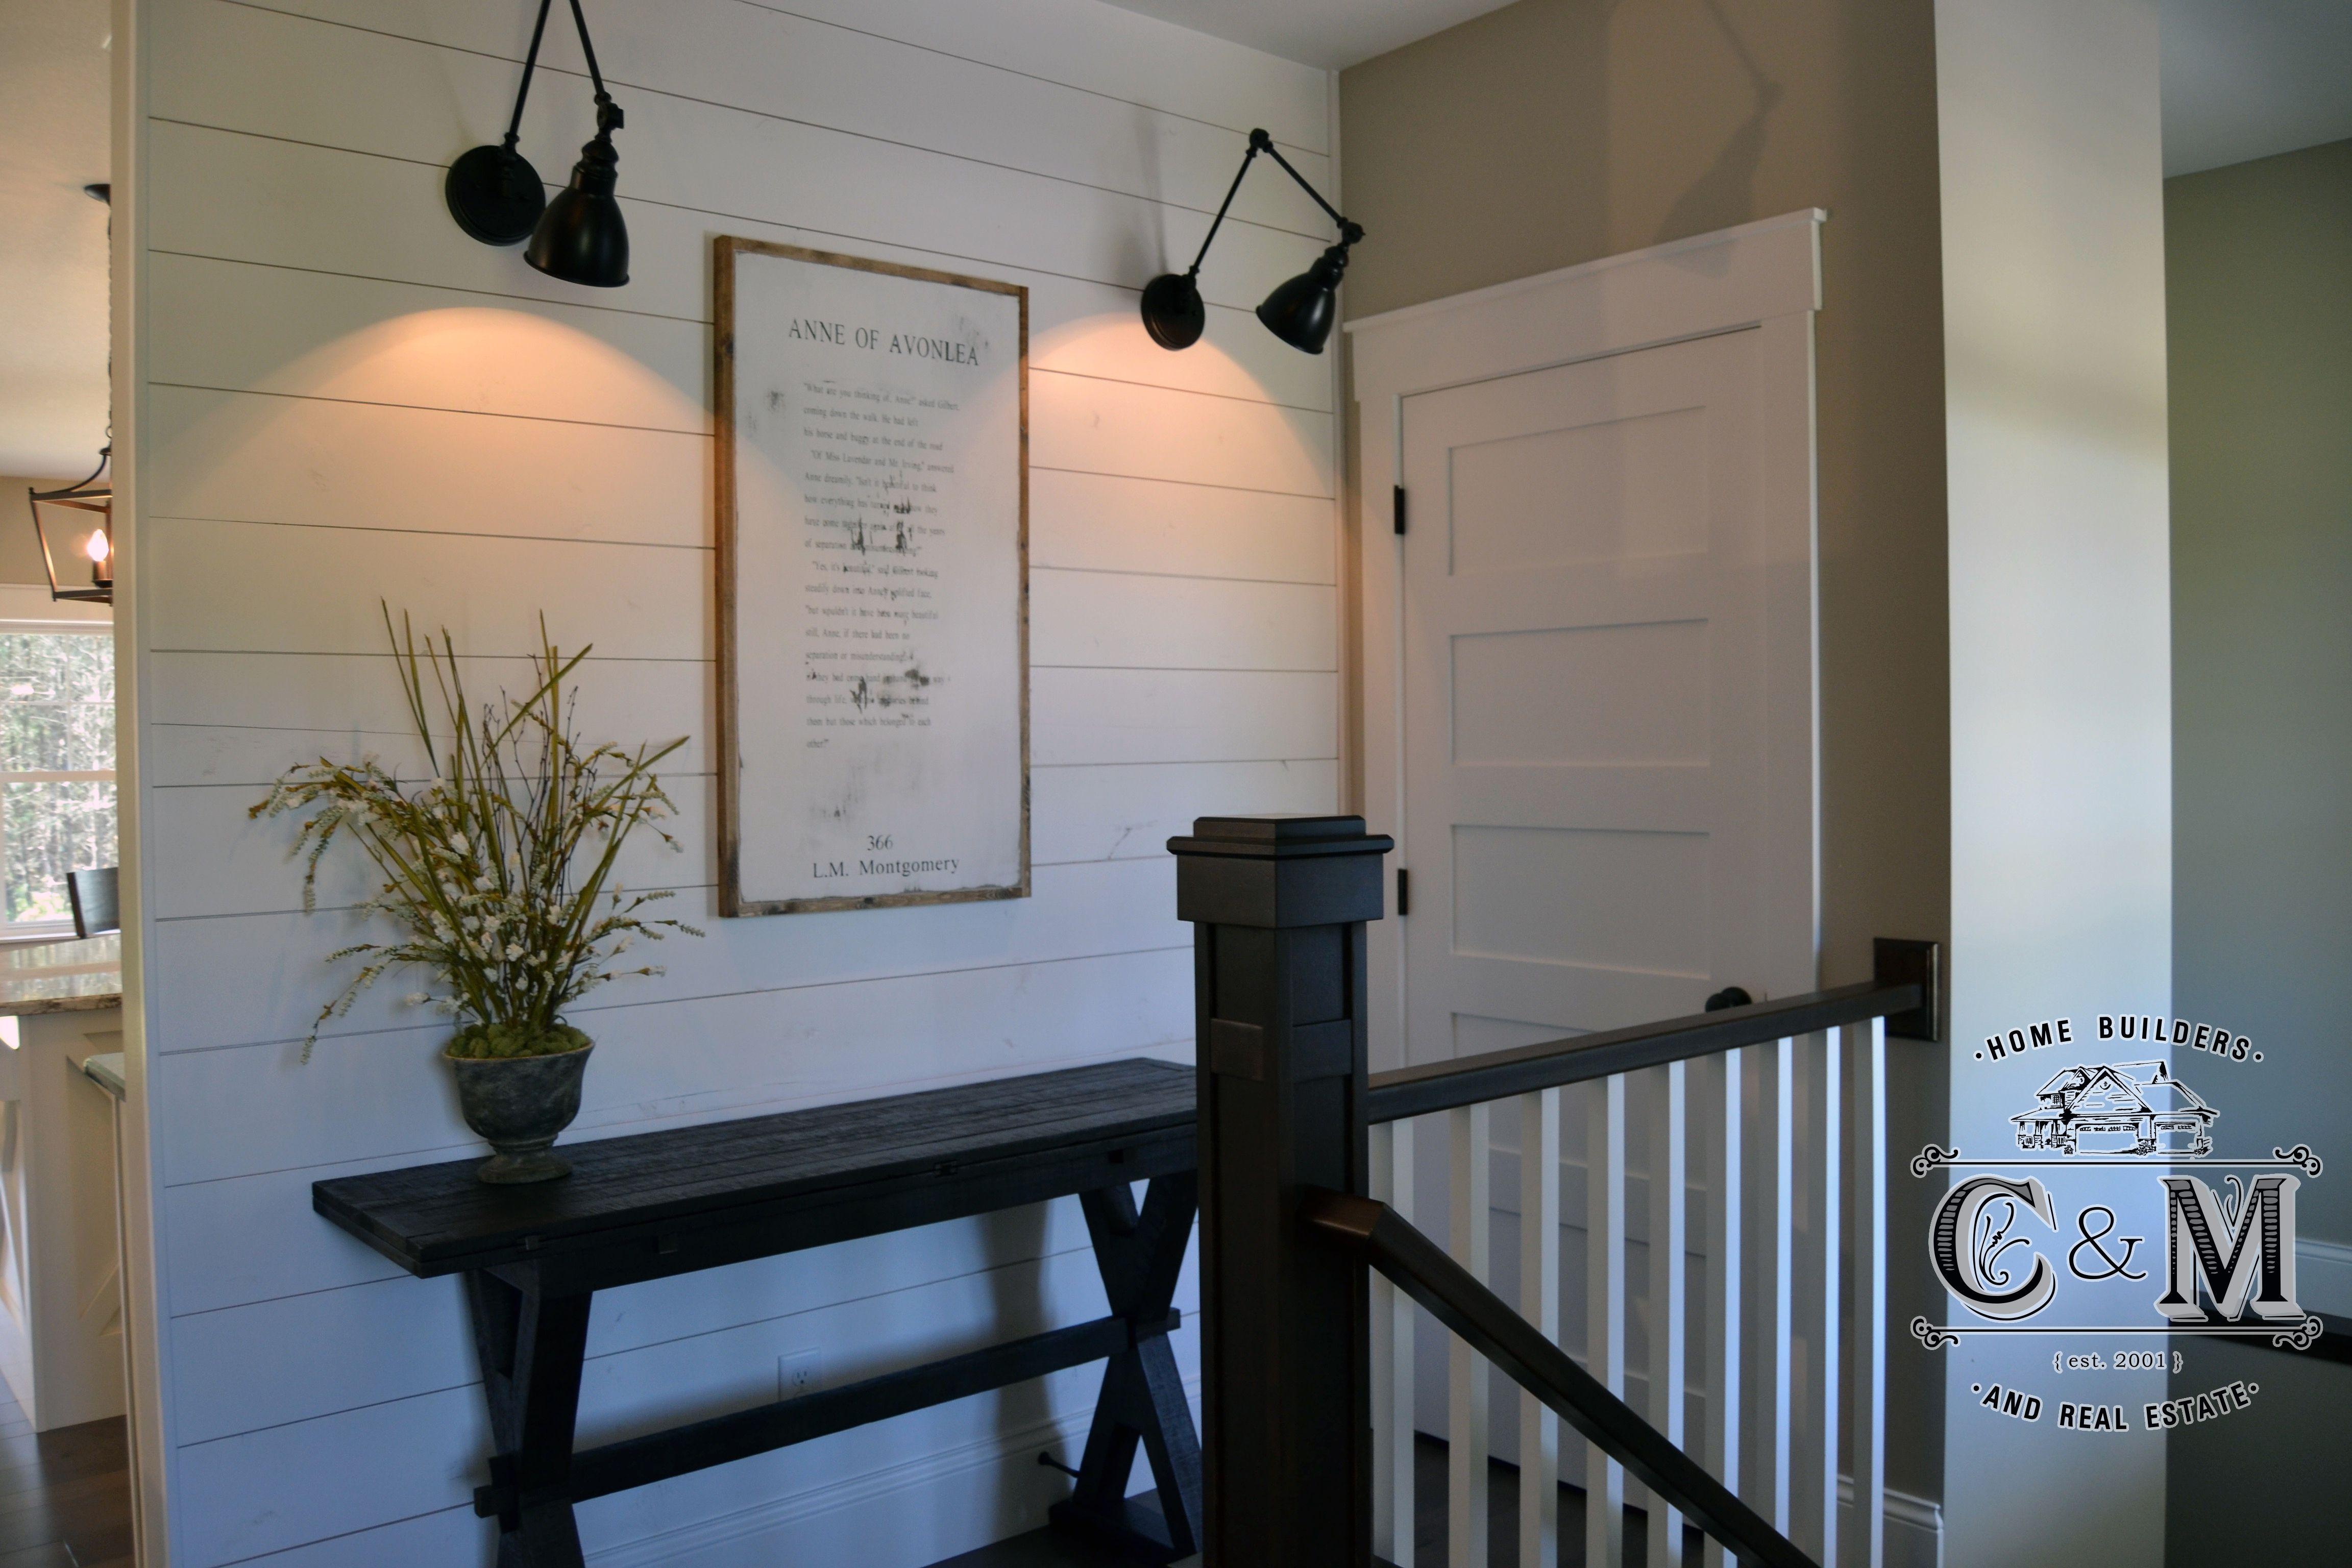 Wall featuring industrial light fixtures makes for a country feel when walking into this entry way cm home builders and real estate eau claire wi